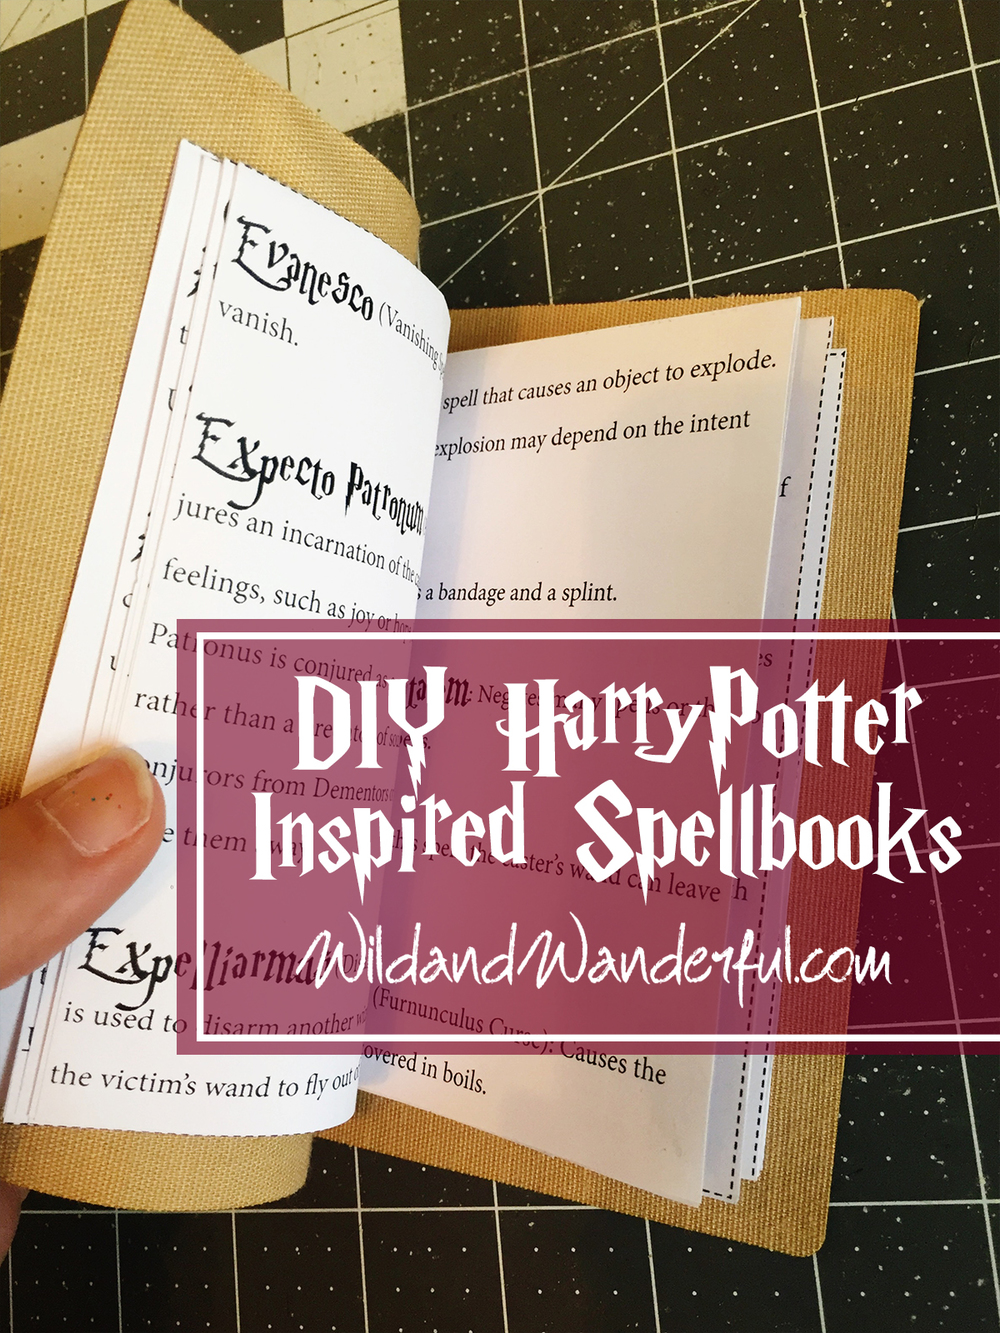 photo relating to Harry Potter Printable Book Covers titled Do it yourself Harry Potter Spellbook + Printable